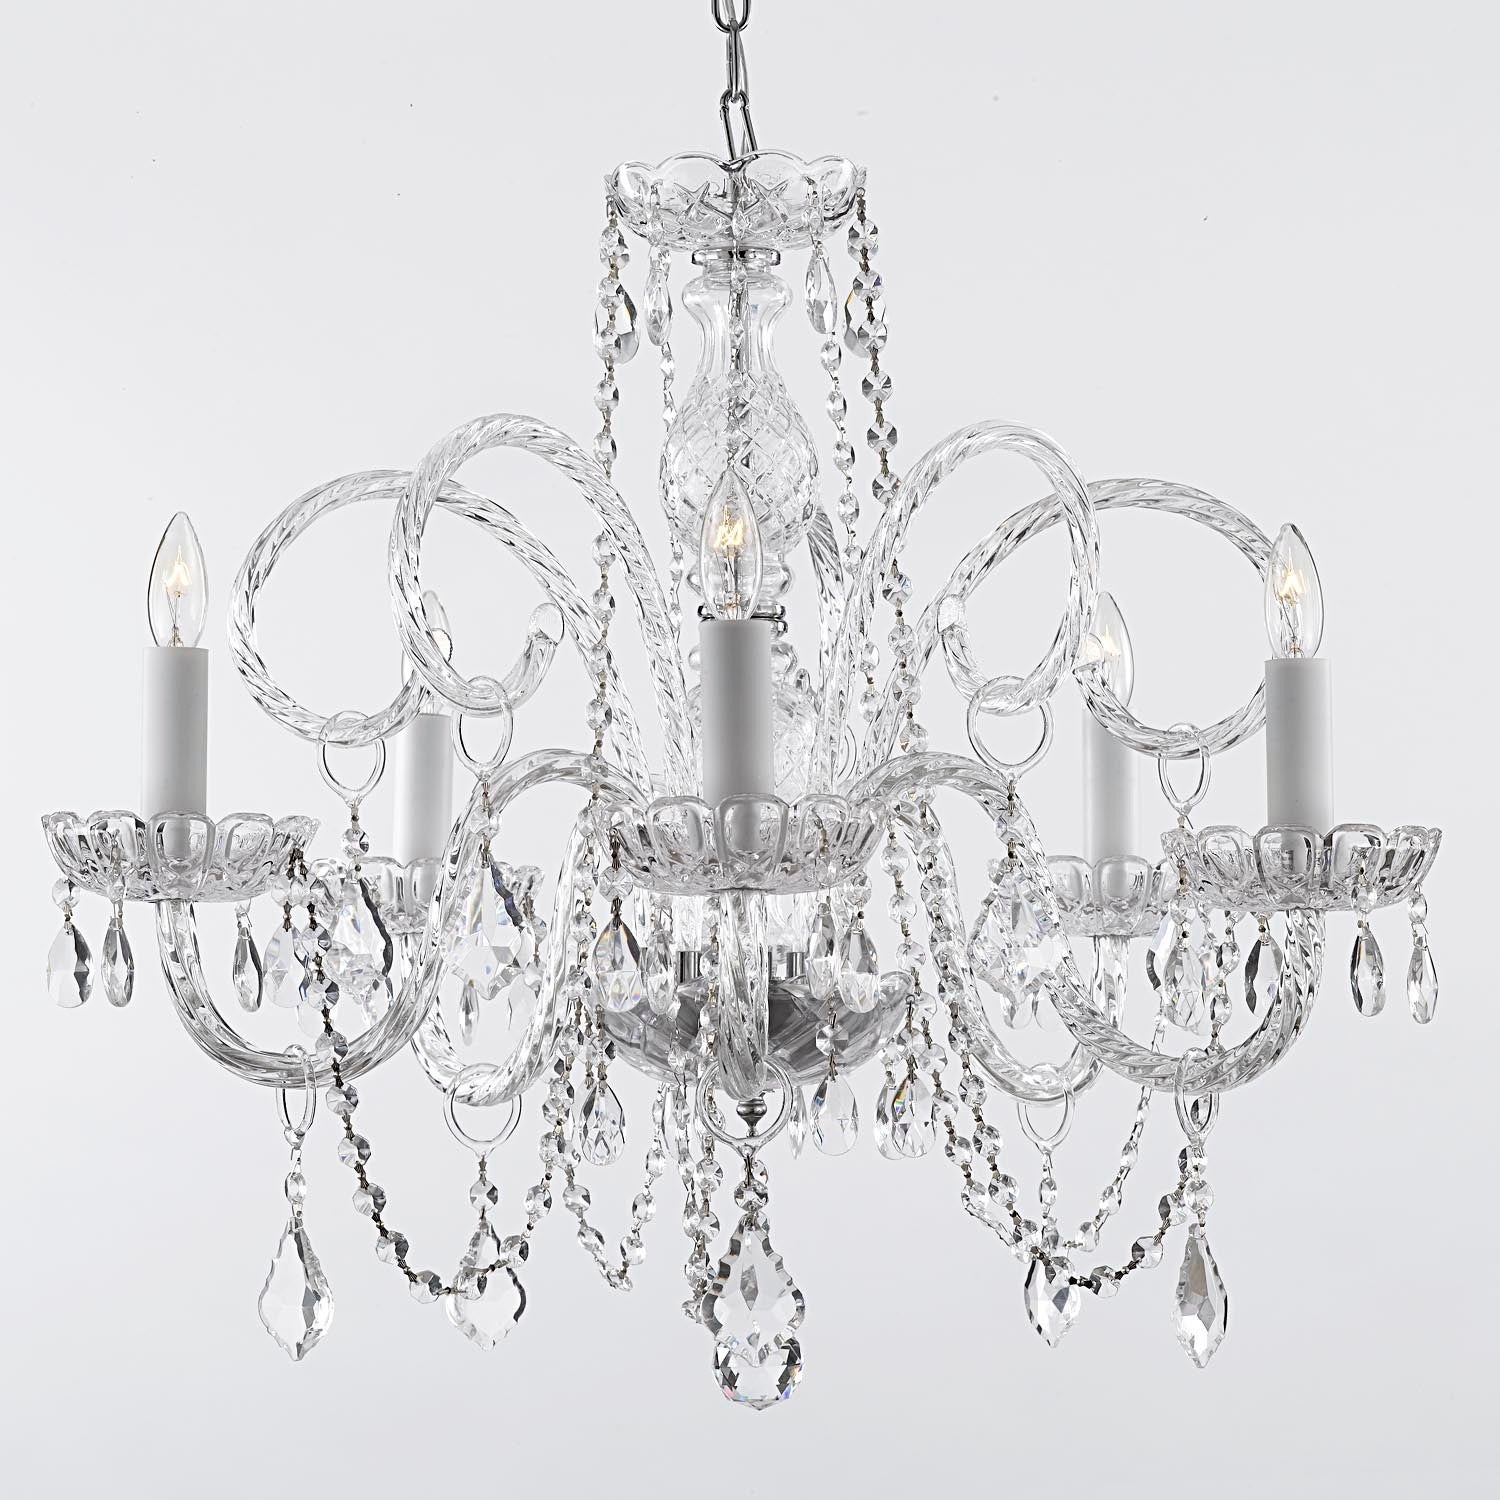 Empress crystal chandelier lighting h25 x w24 free shipping today empress crystal chandelier lighting h25 x w24 free shipping today overstock 18141069 arubaitofo Gallery